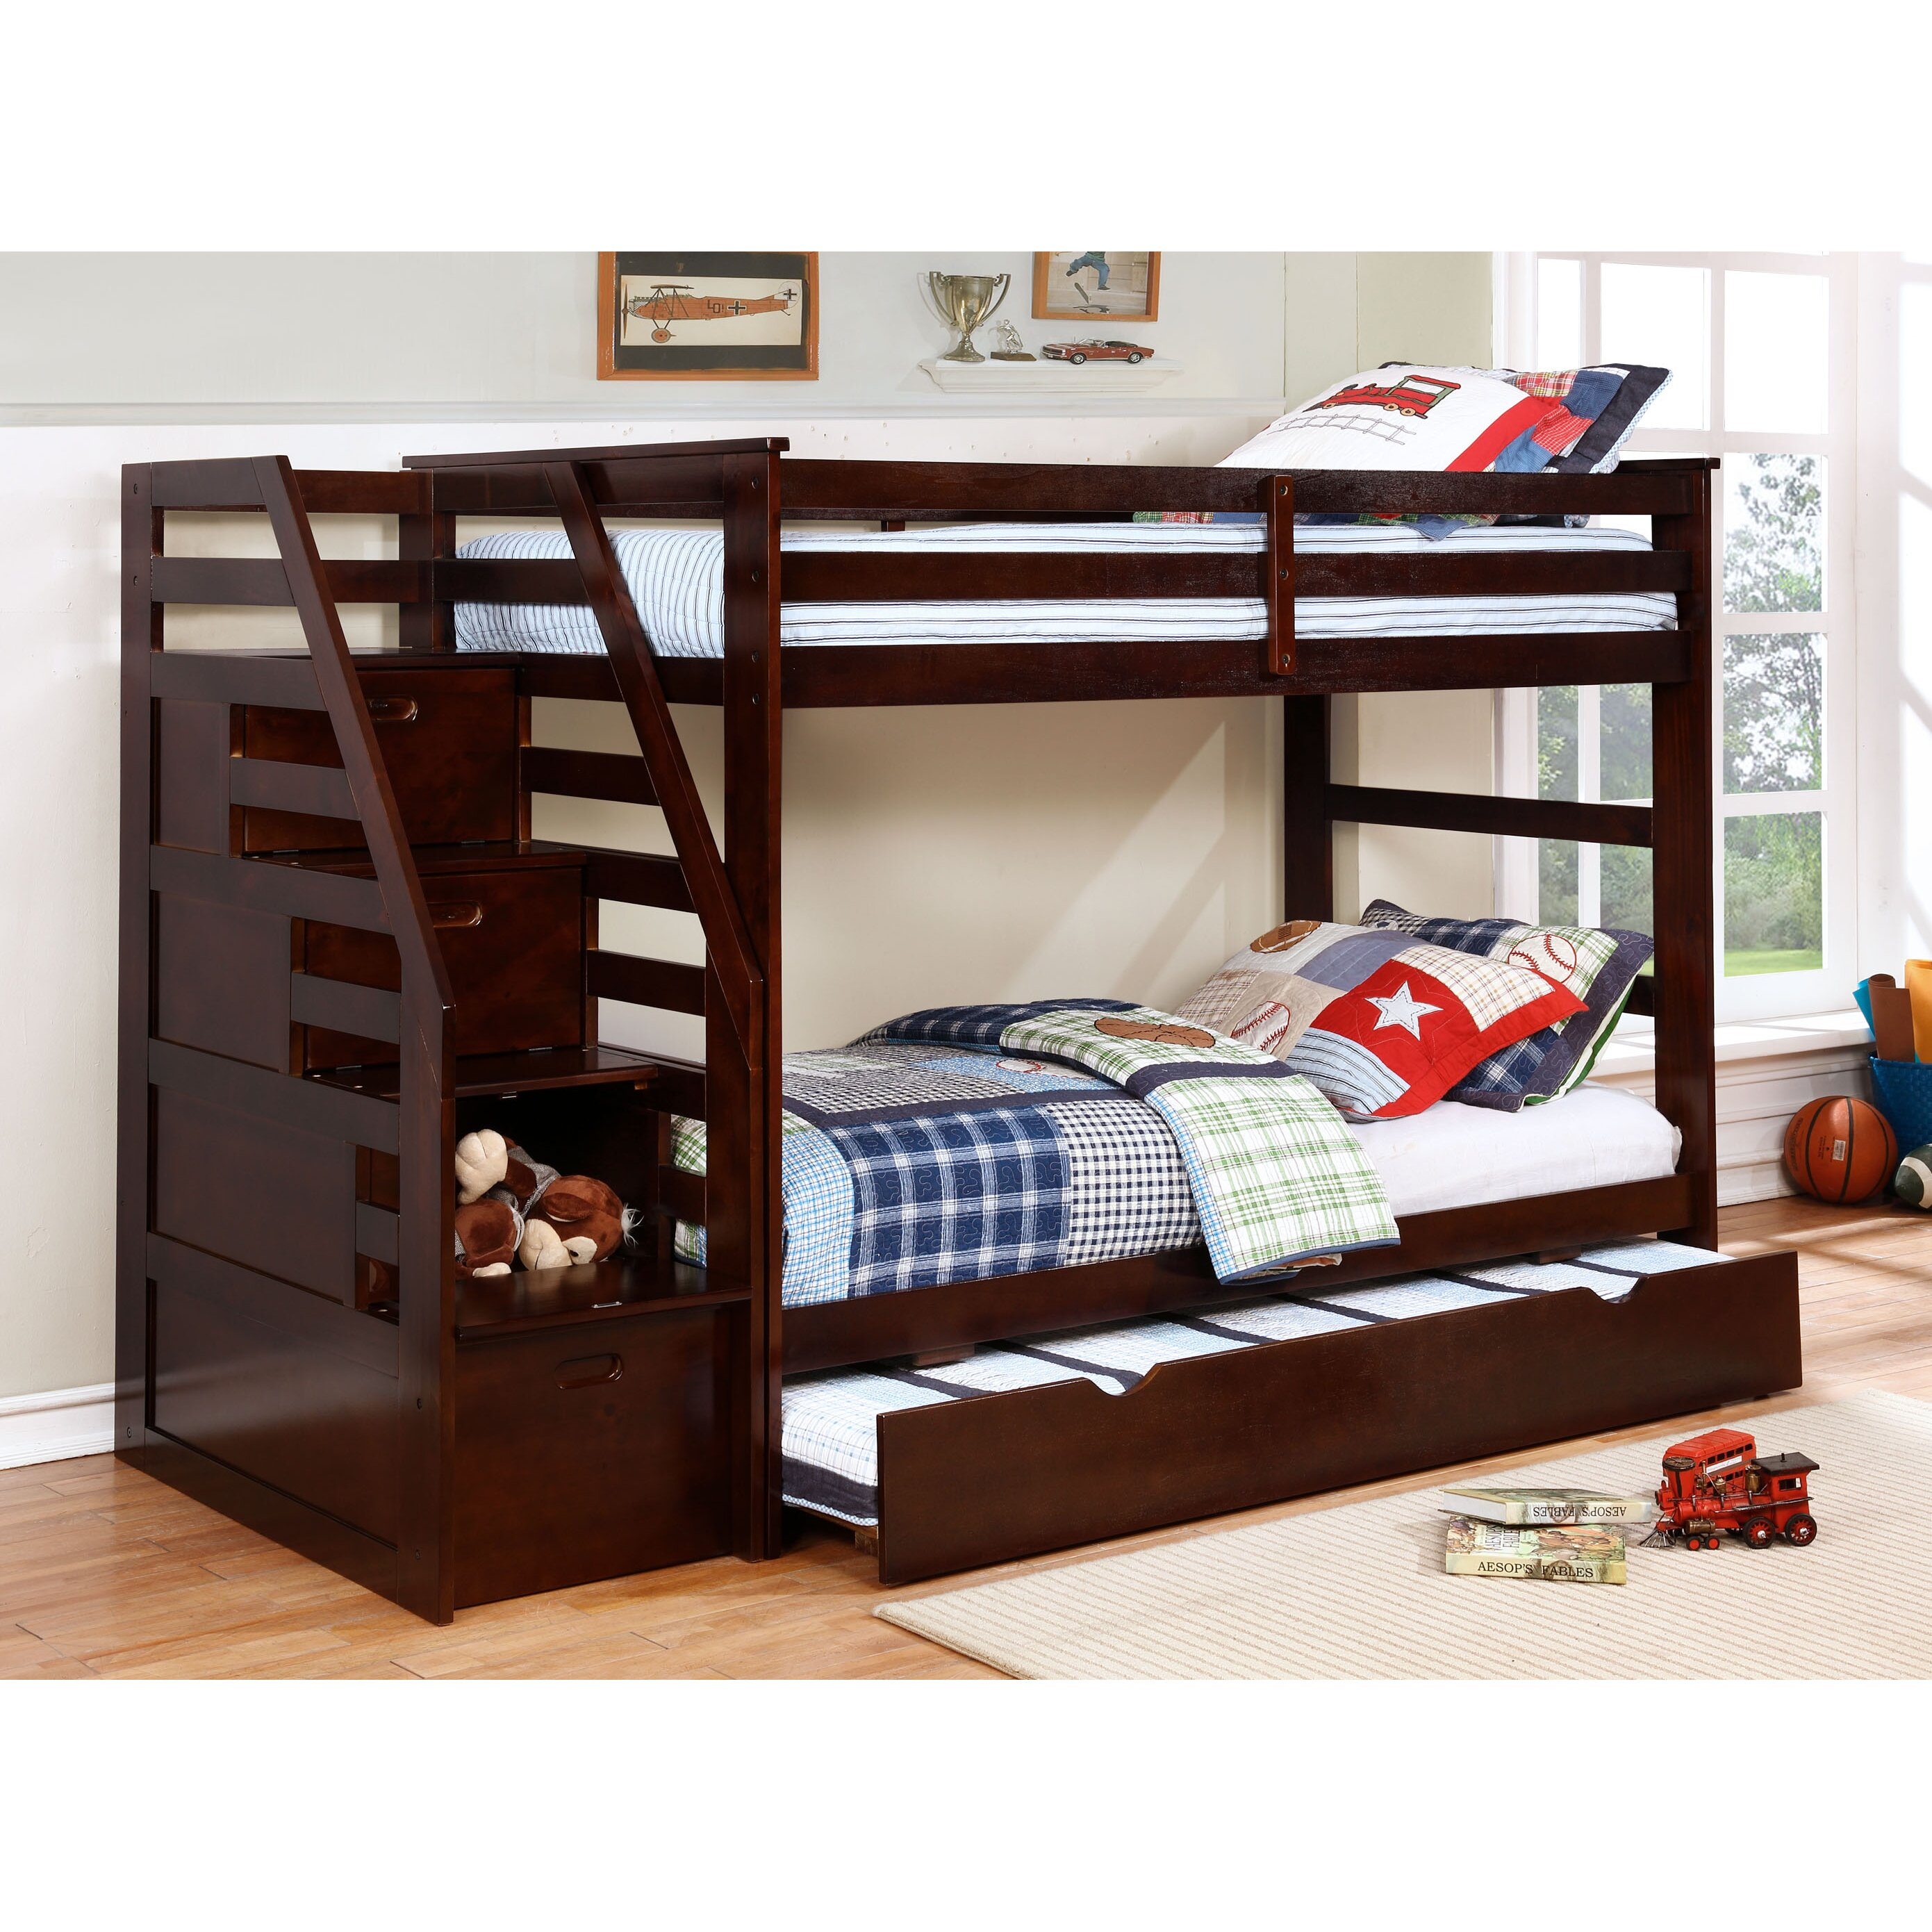 Wildon Home Cosmo Twin Bunk Bed With Trundle And Storage